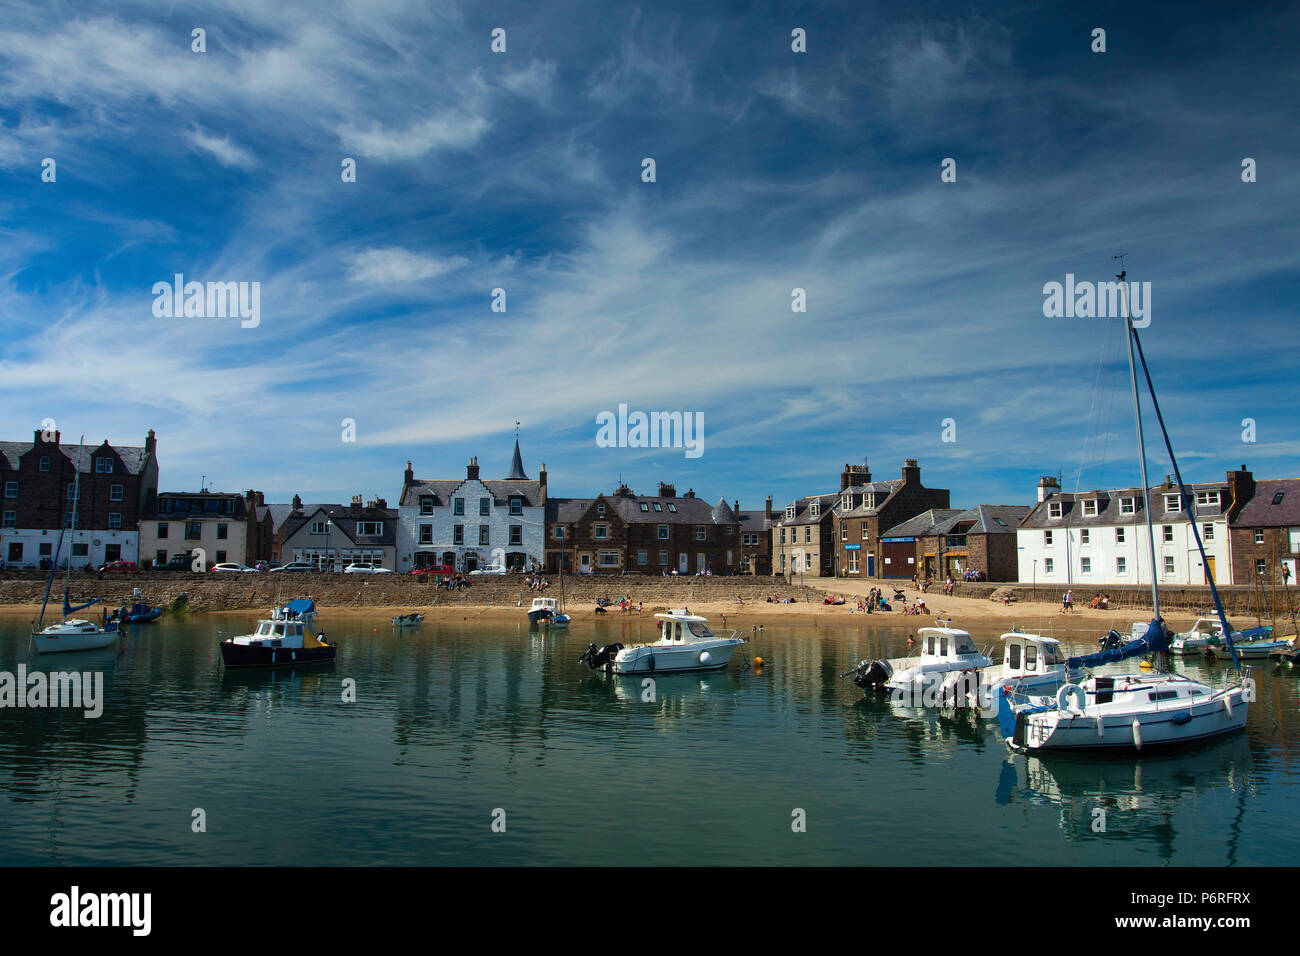 Stonehaven and Stonehaven Harbour, Aberdeenshire, Scotland - Stock Image